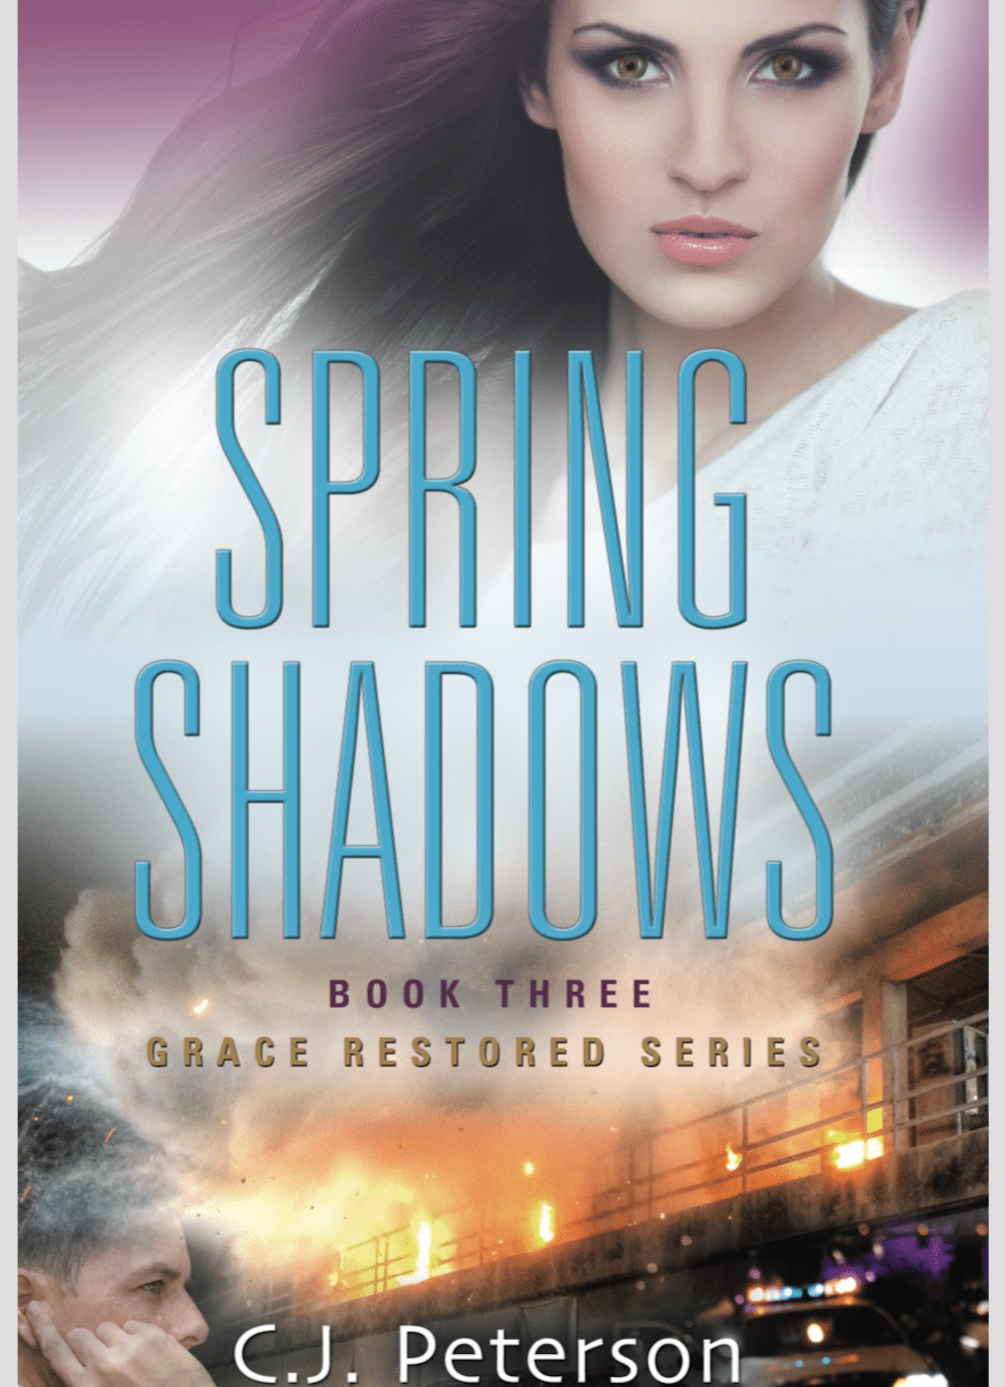 SPRING SHADOWS (Book 3, Grace Restored Series)